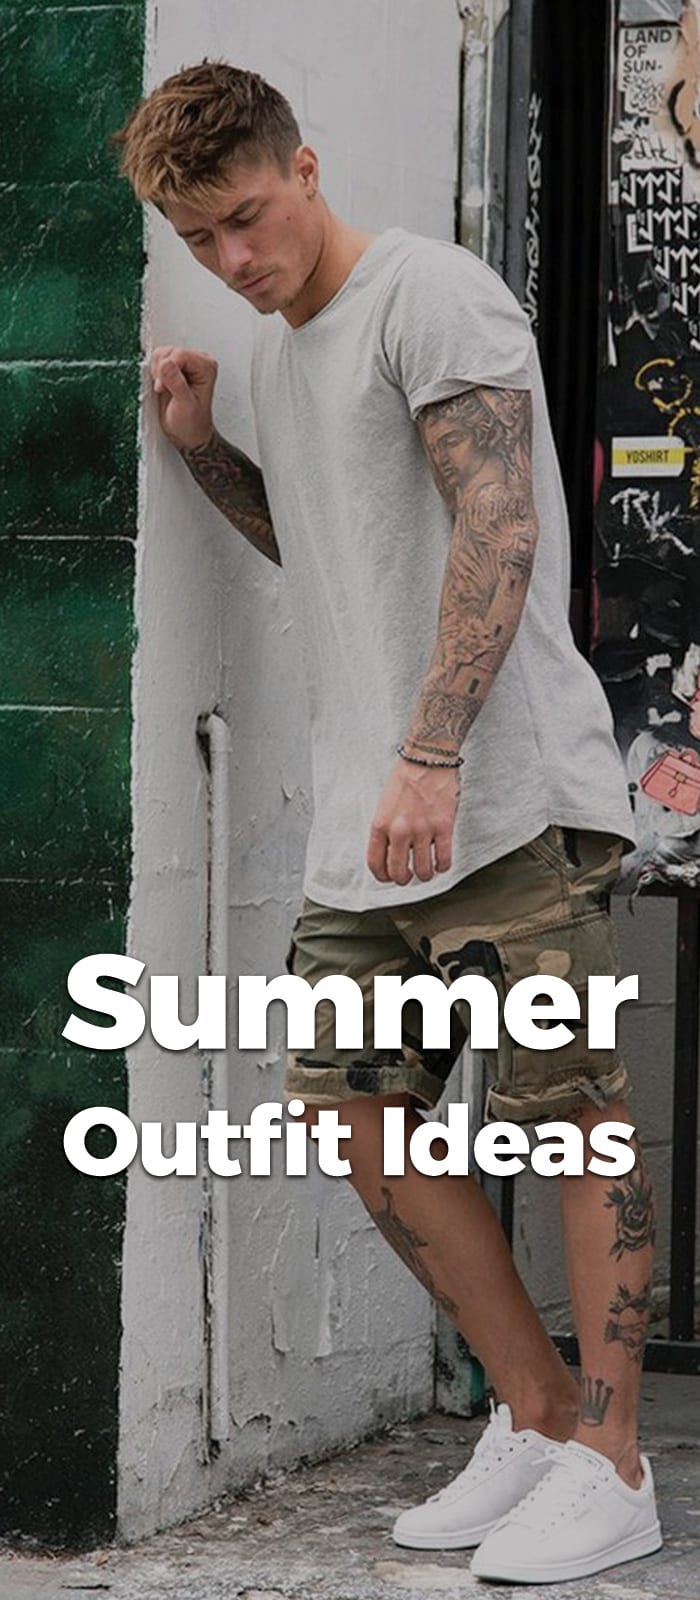 Best Summer outfit ideas for Men